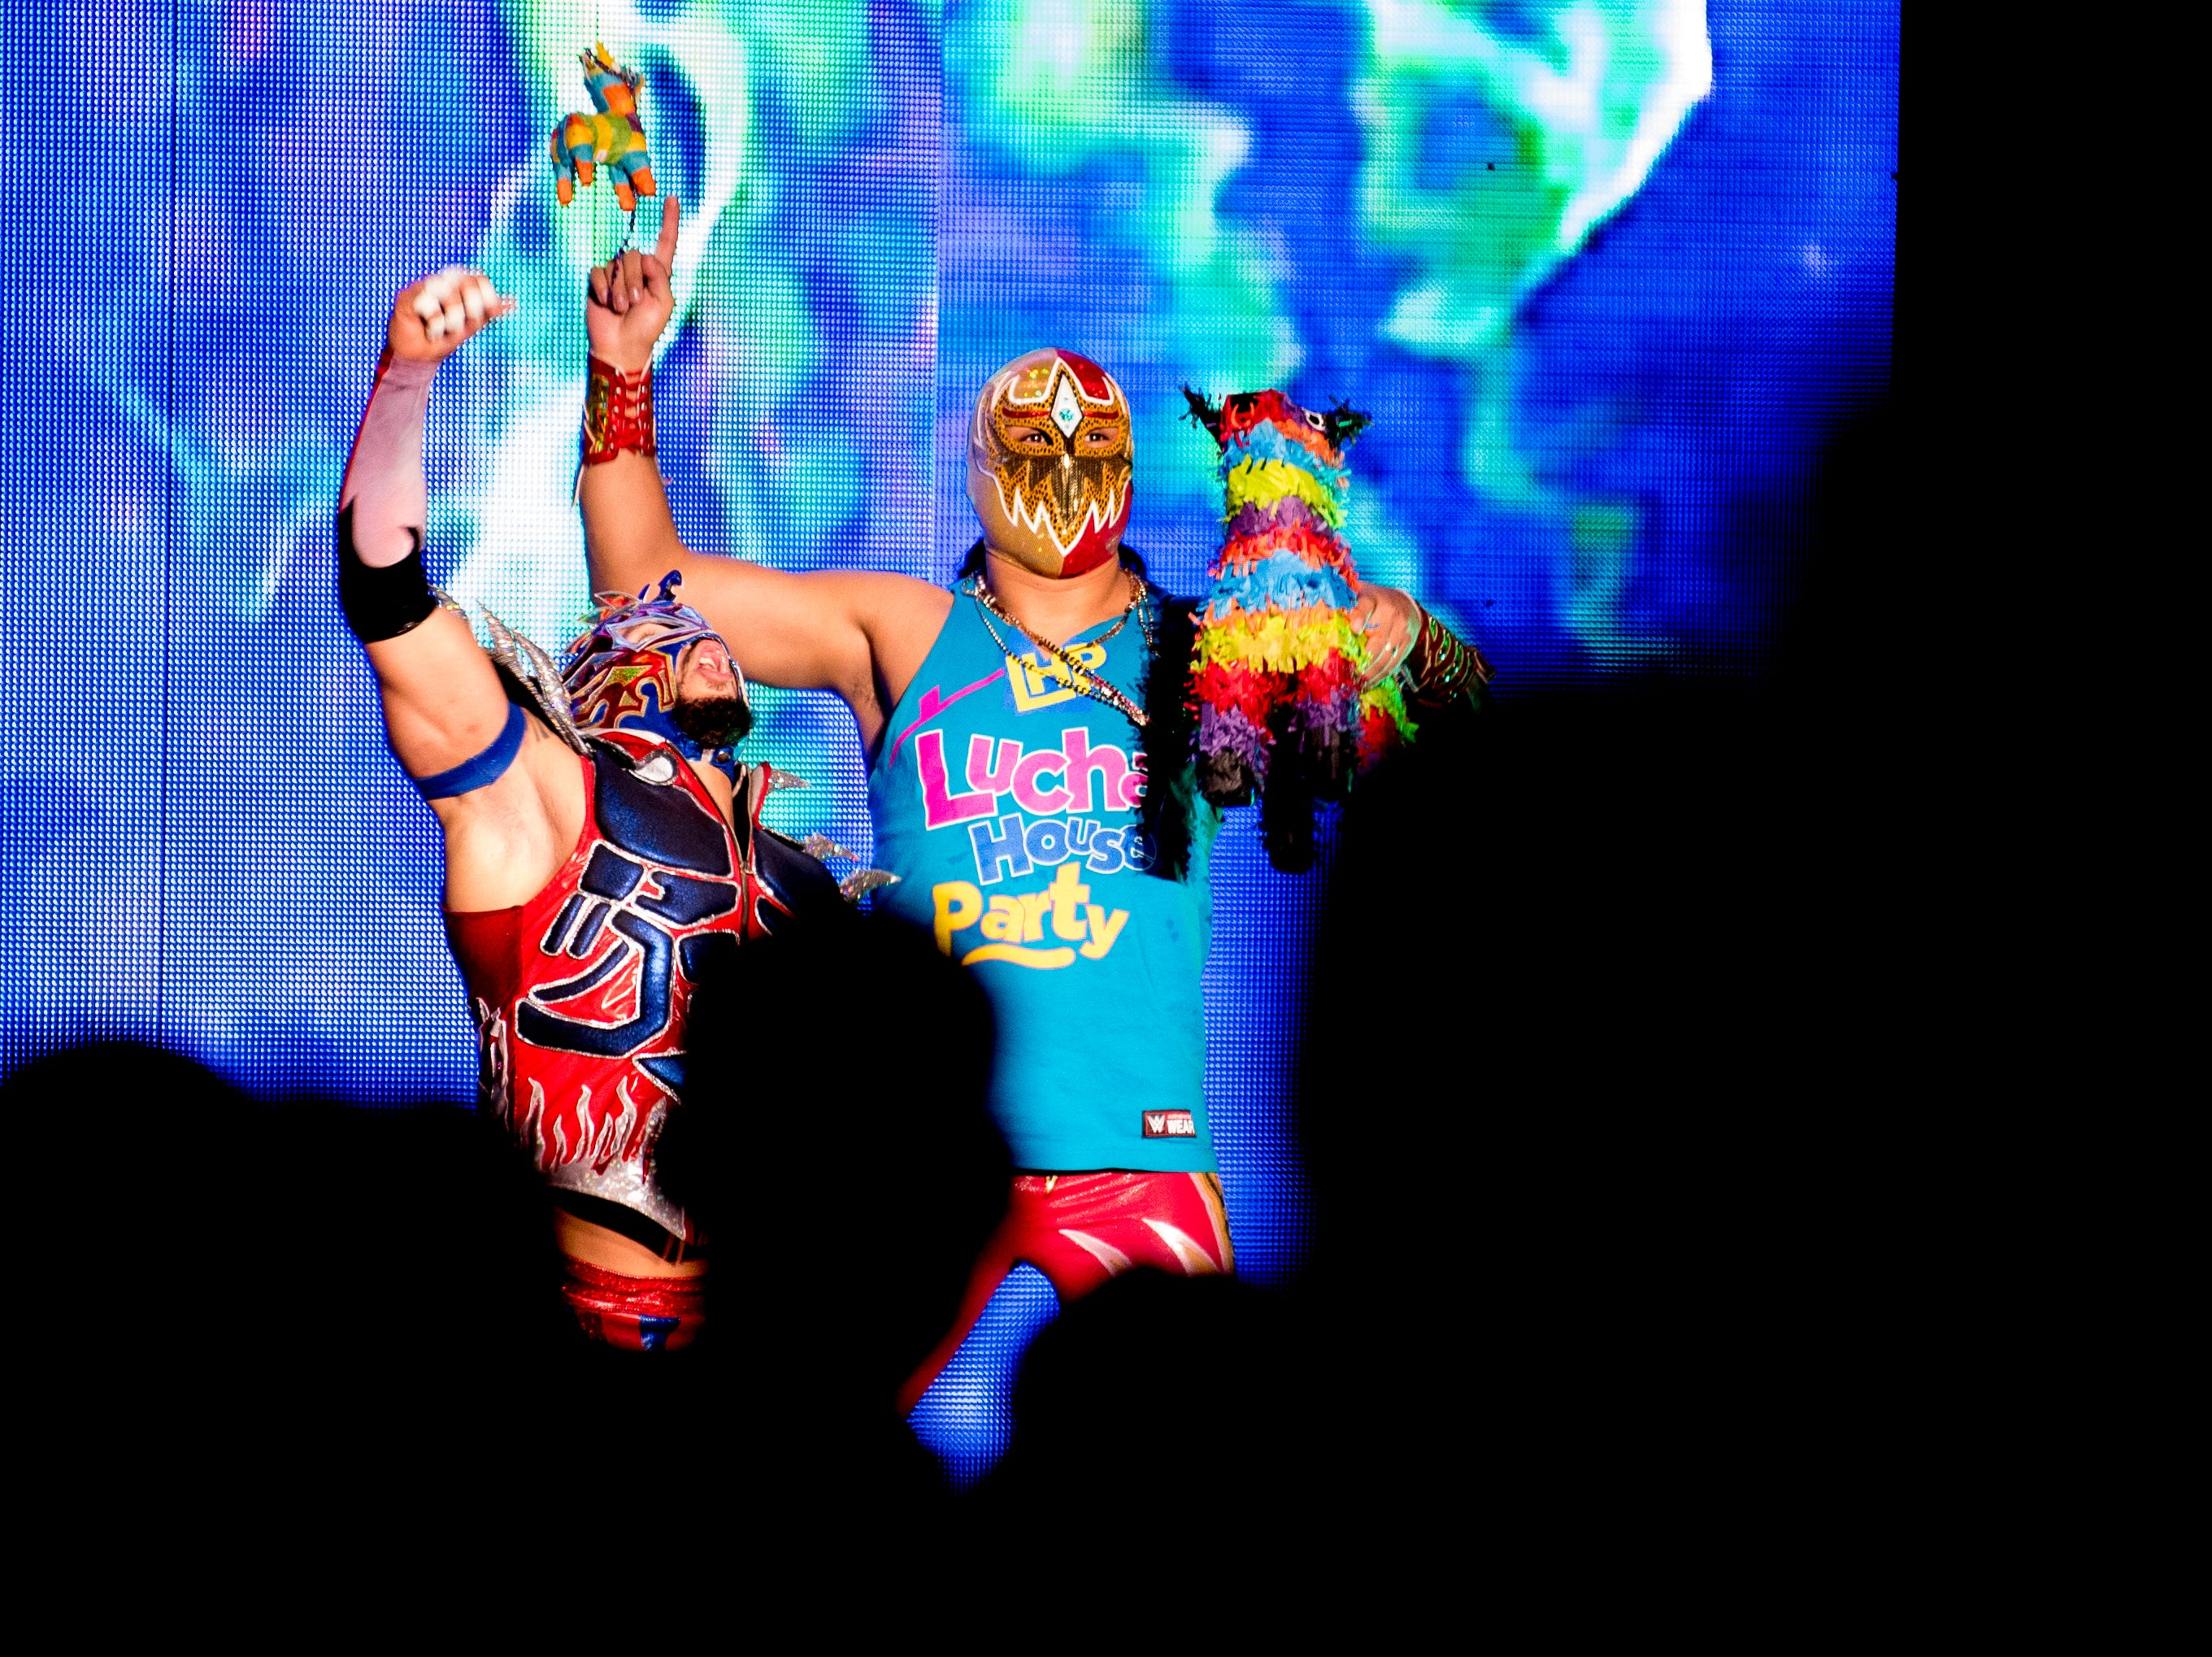 Lucha House Party wrestles The Revival during a WWE Live performance at the Knoxville Civic Coliseum in Knoxville, Tennessee on Saturday, January 12, 2019. *KNOXVILLE NEWS SENTINEL USE ONLY*